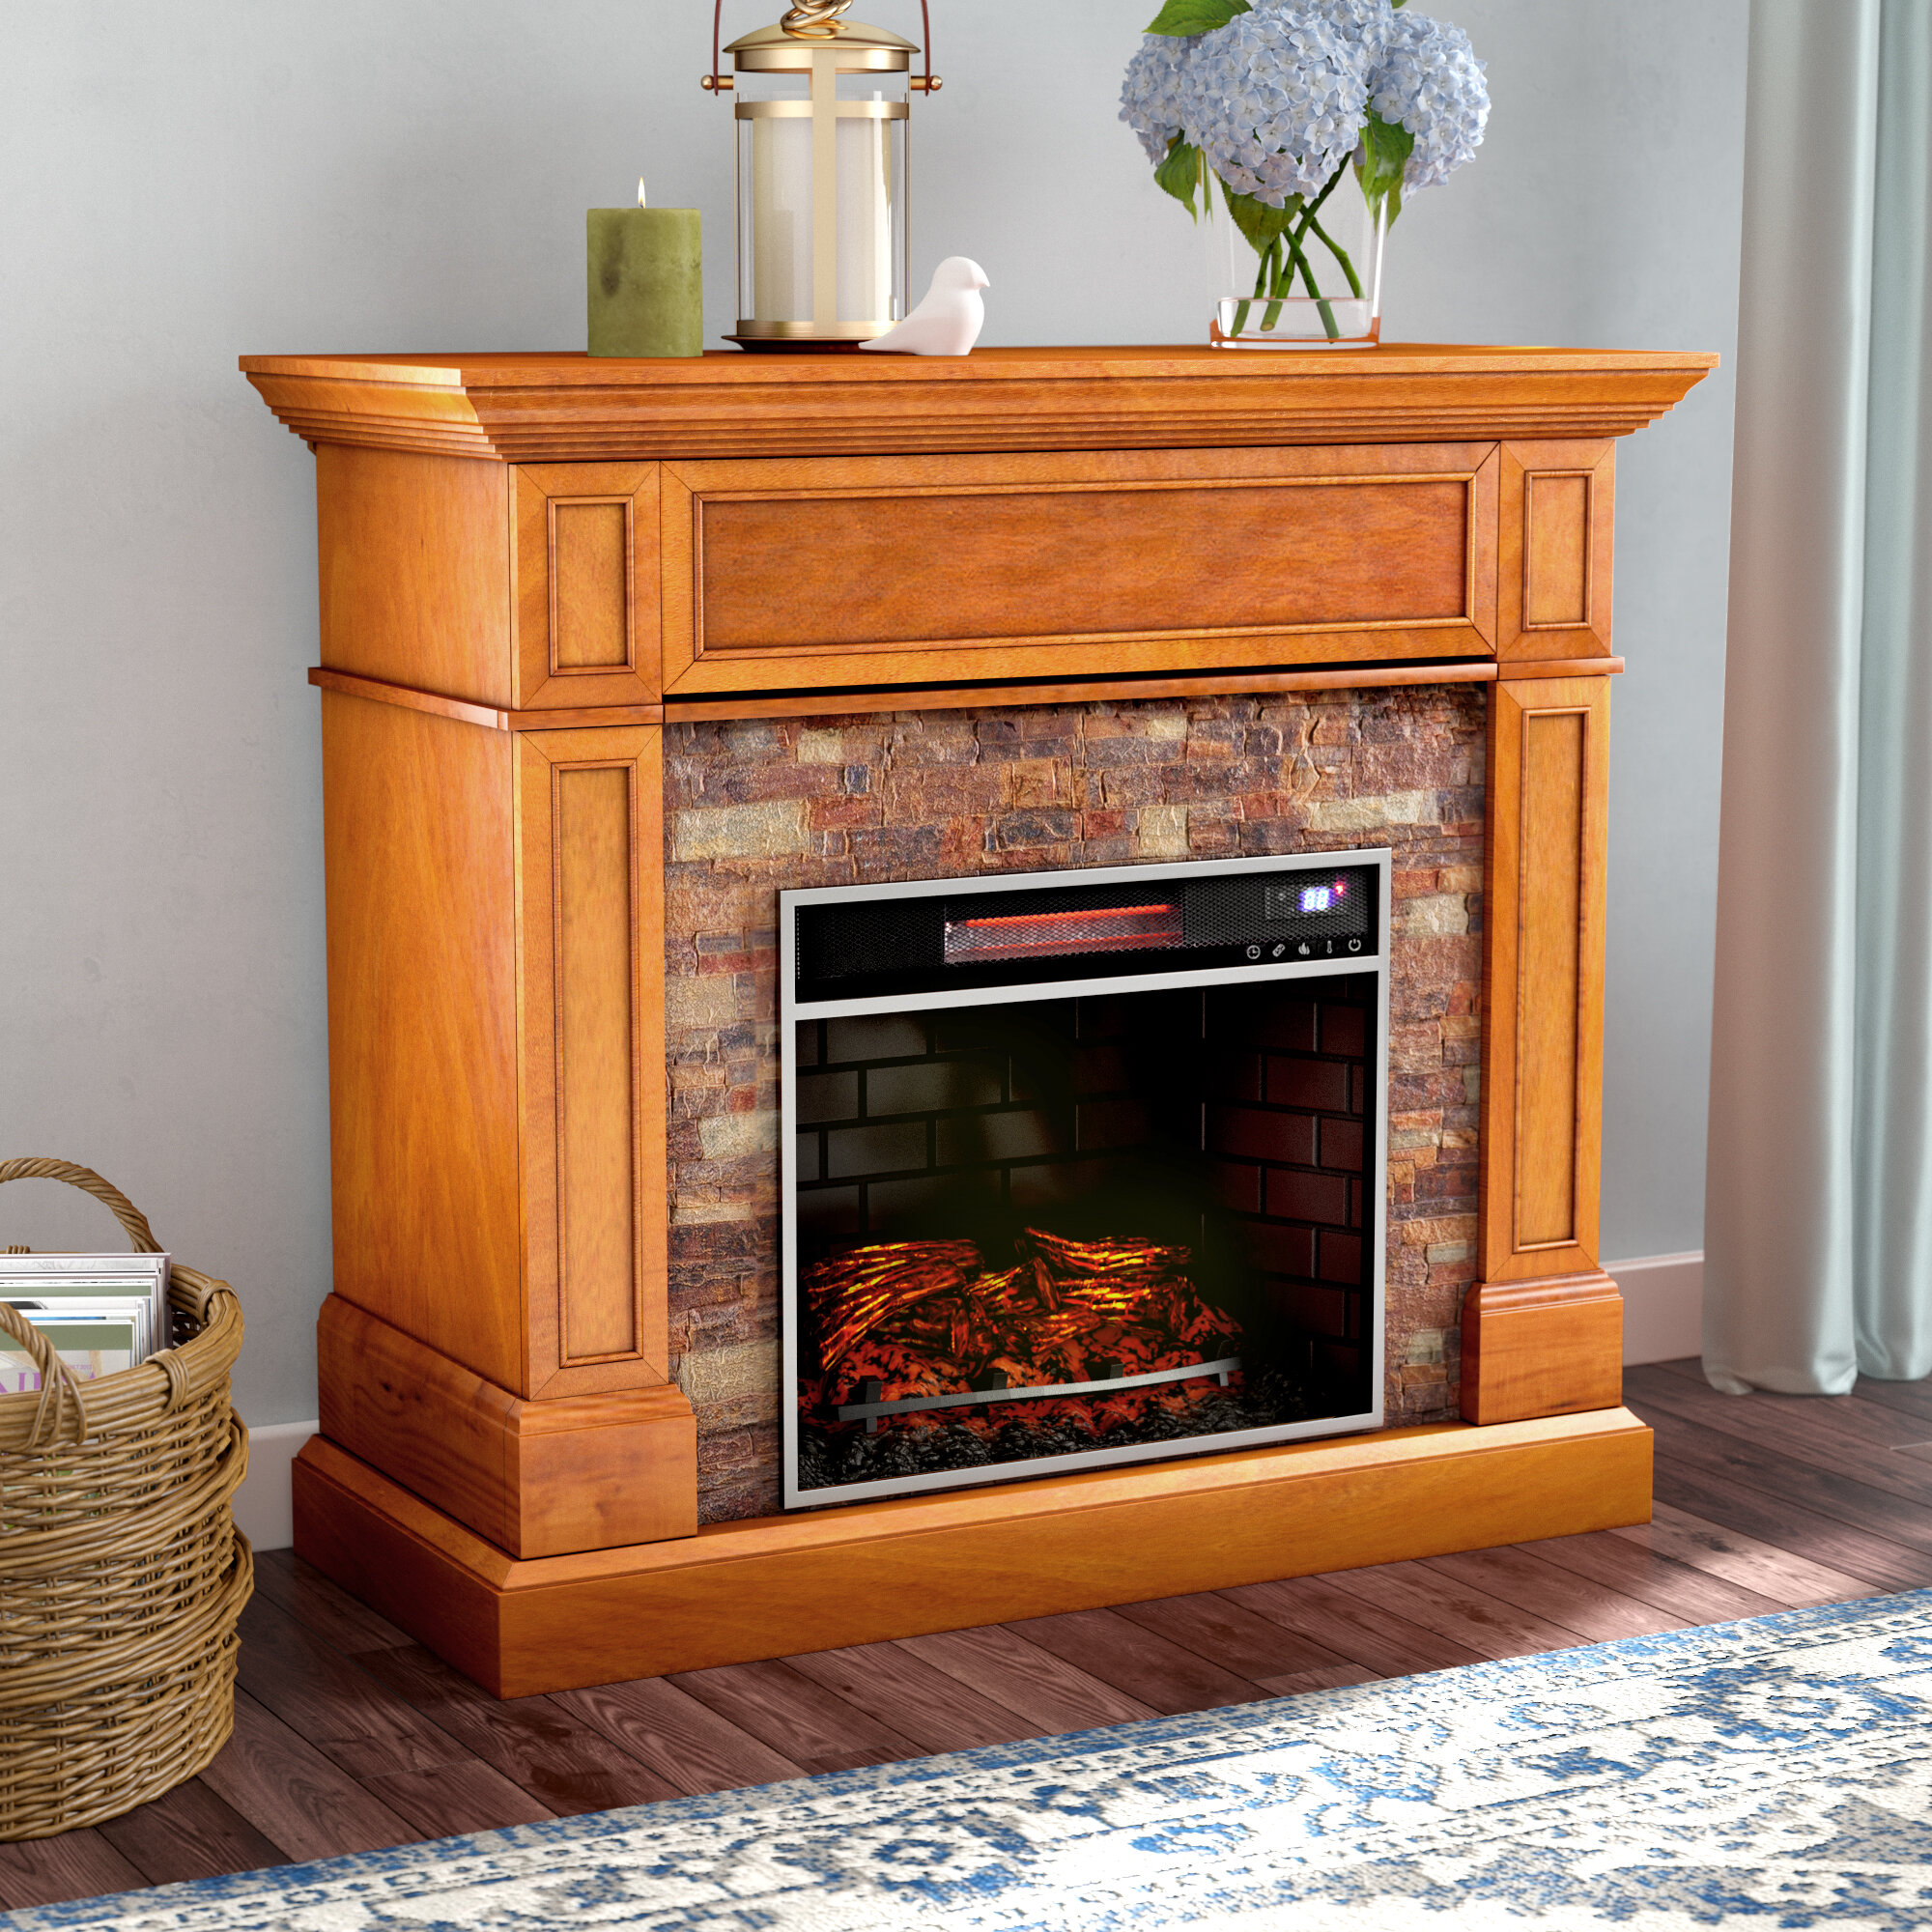 b tv depot electric in w black cooling fireplace n home stands venting heating fireplaces media the